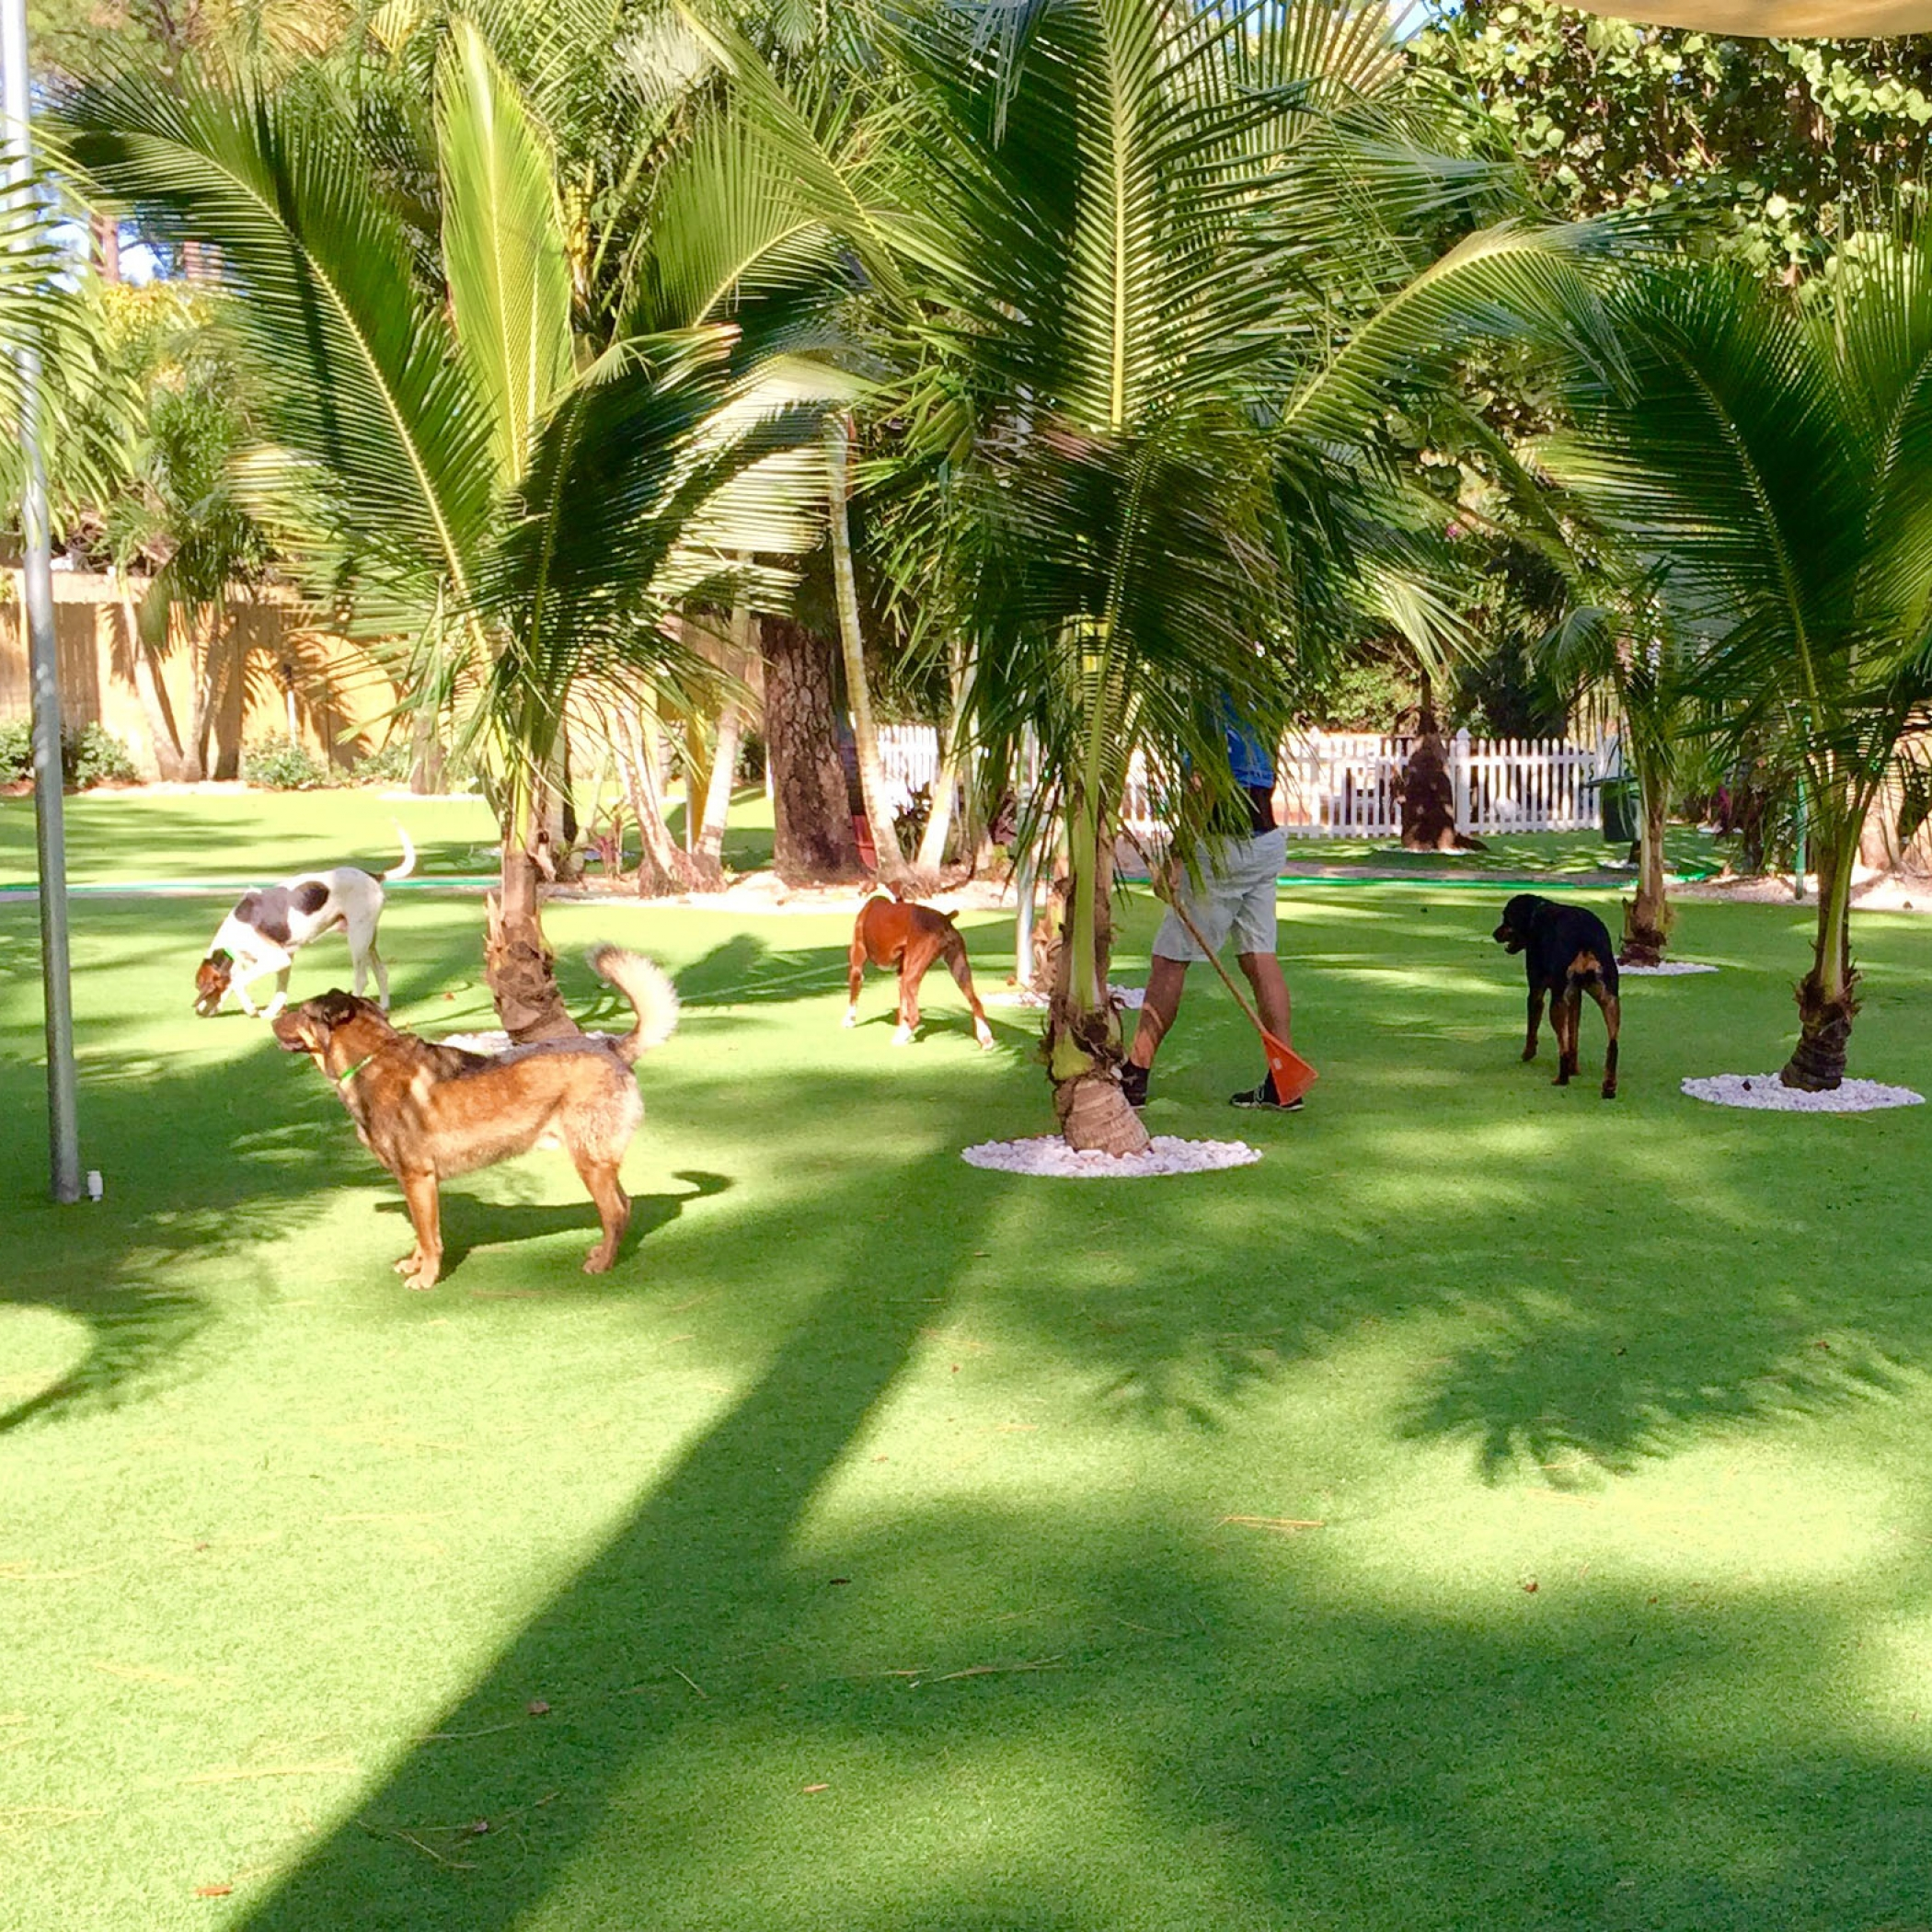 Dog Park, Artificial Grass for Dogs Laguna, California